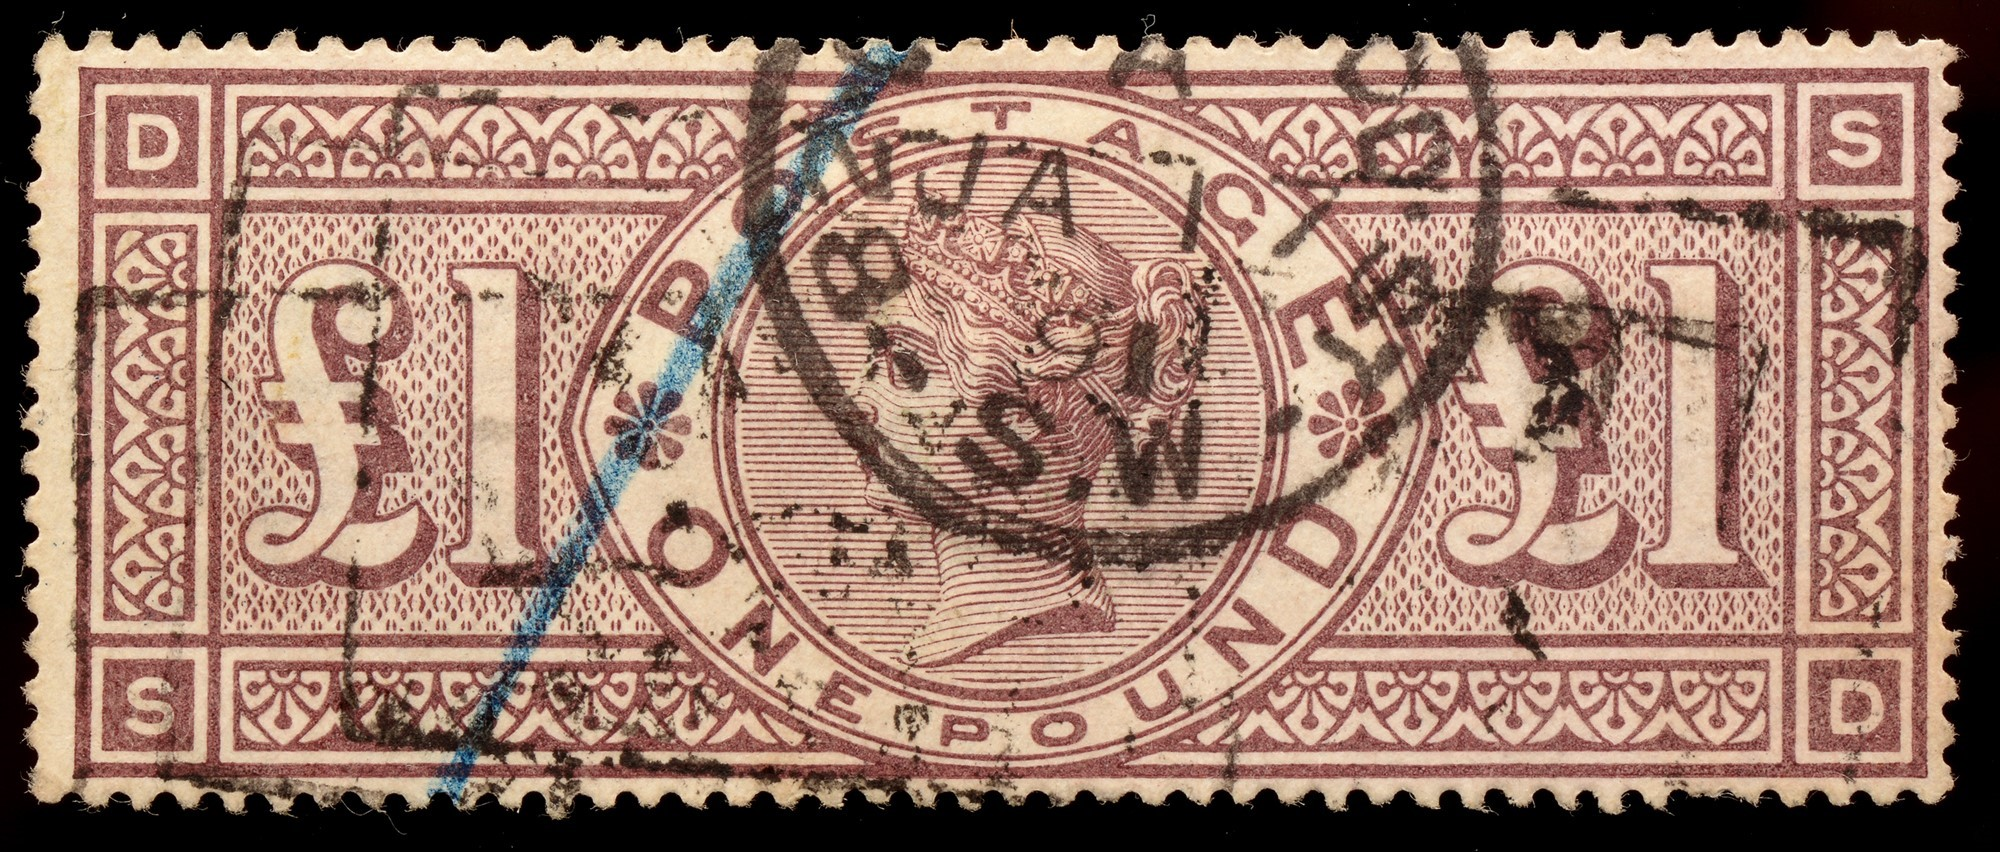 GB 1884 £1 brown lilac